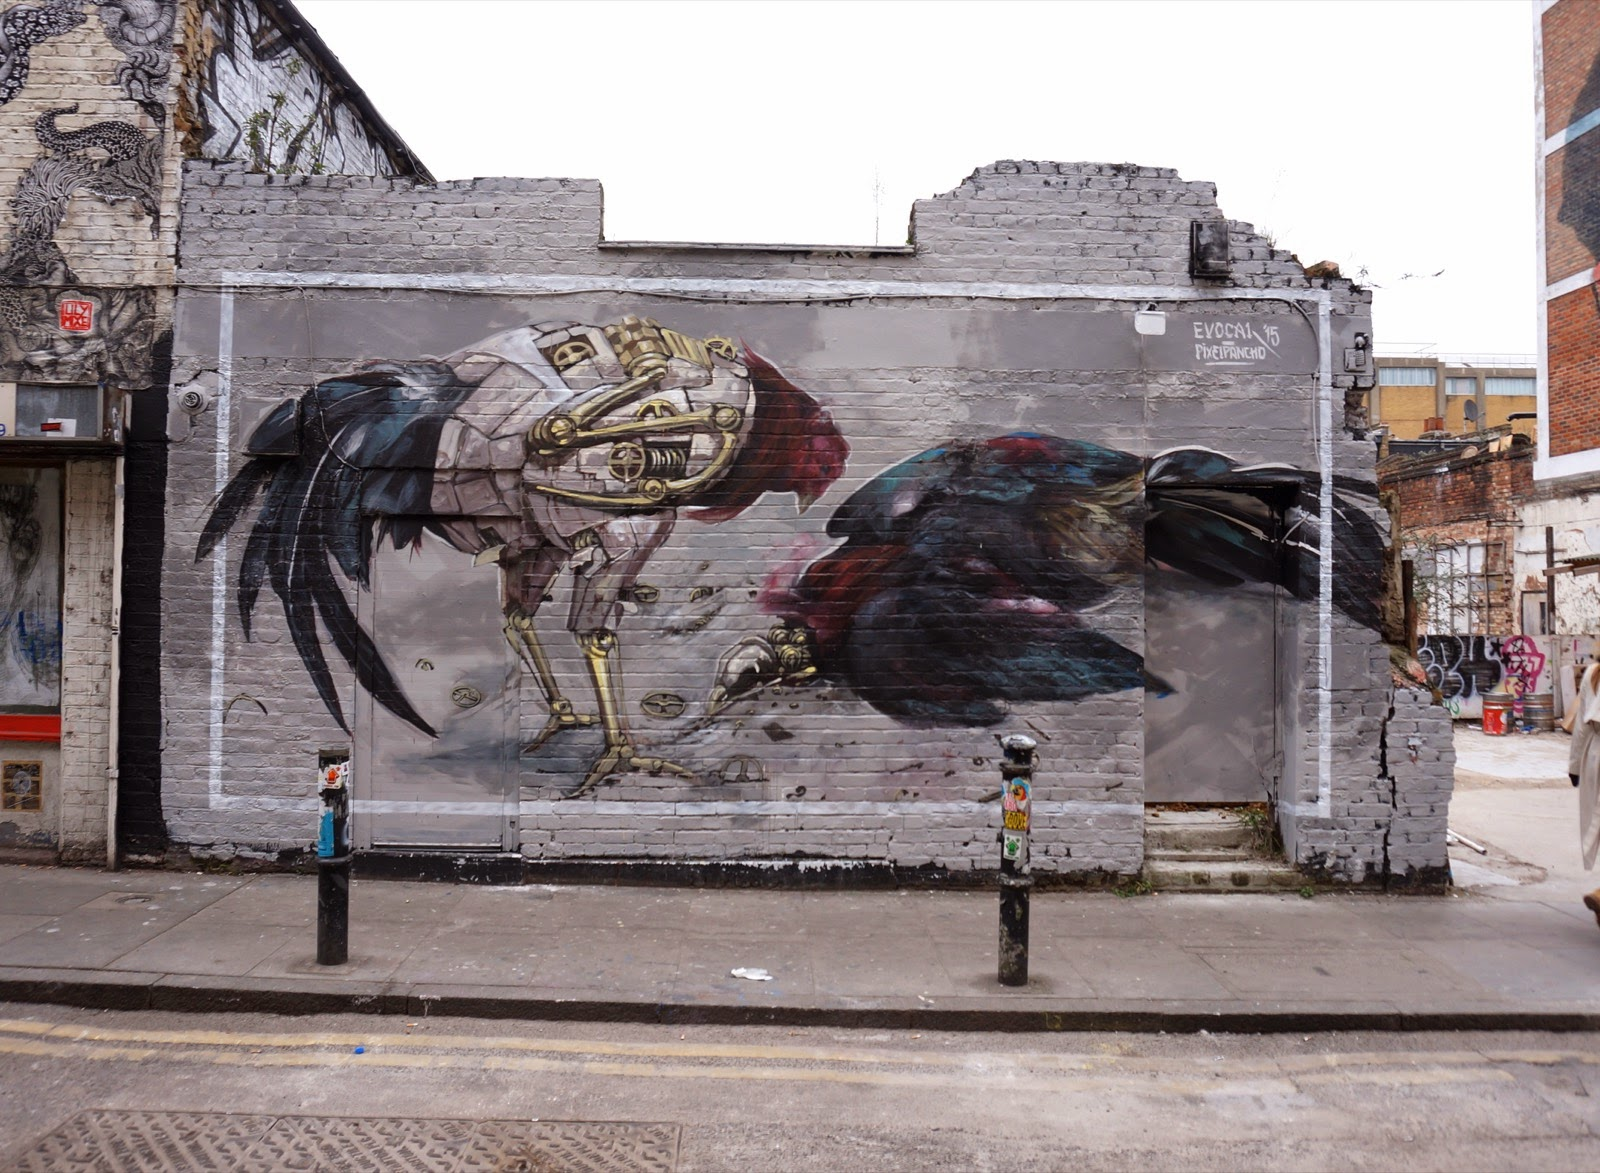 pixel-pancho-evoca1-new-mural-in-london-01